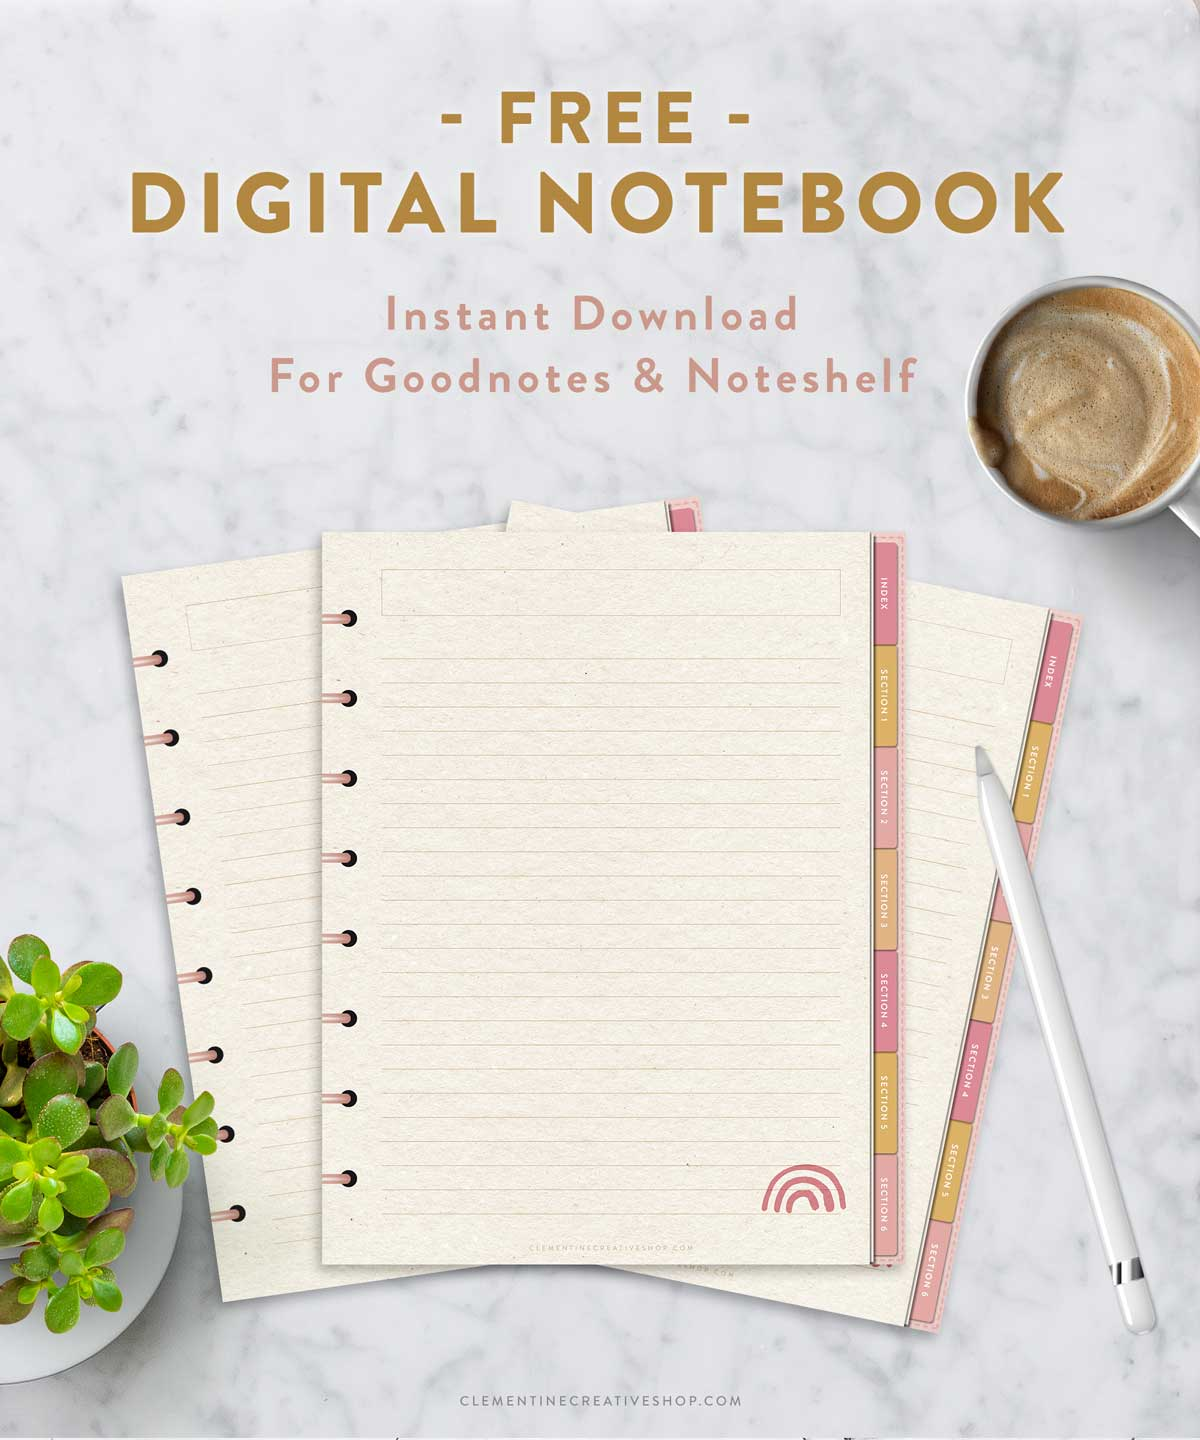 free digital notebook for iPad and tablets